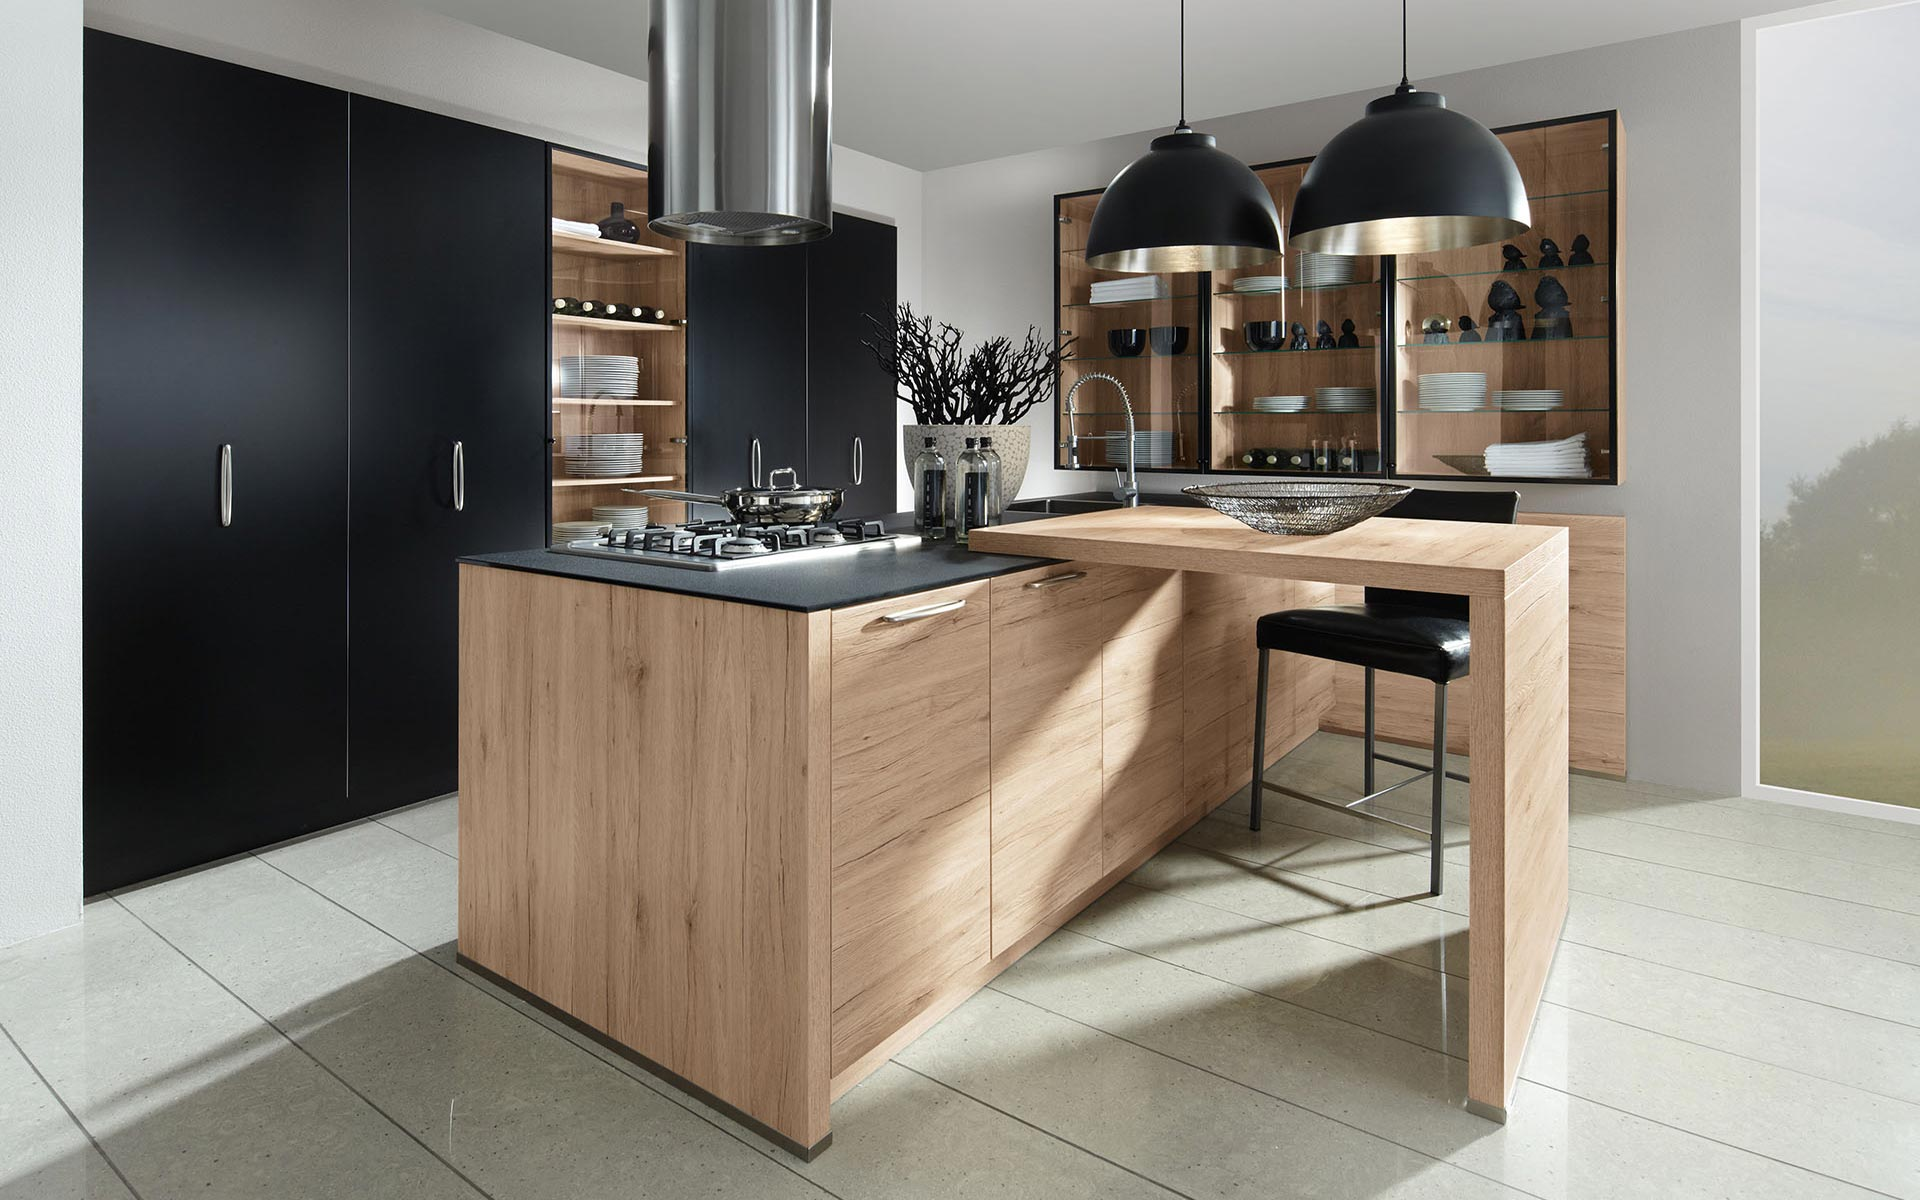 Toronto: Kitchens from Germany, Europe. Fenix Schwarz • Sincrono Sanremo Oak